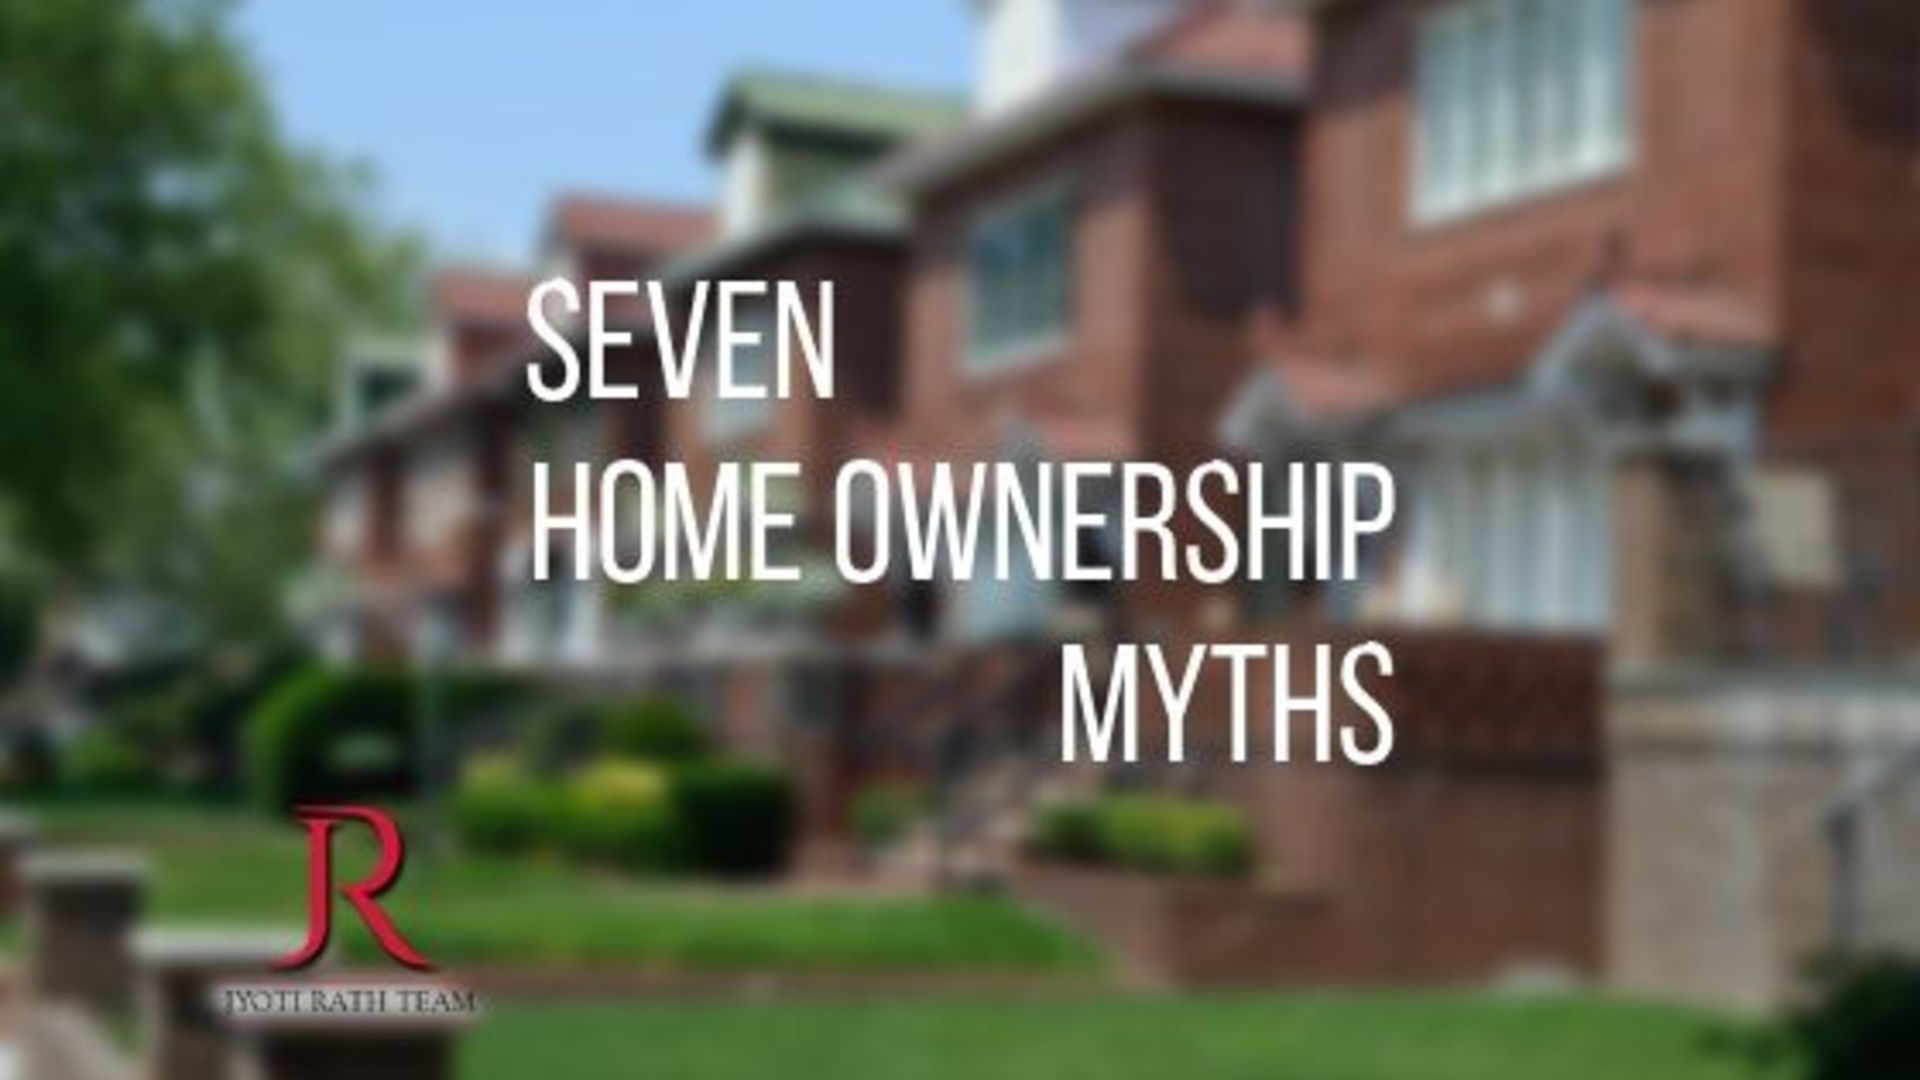 Seven Home Ownership Myths